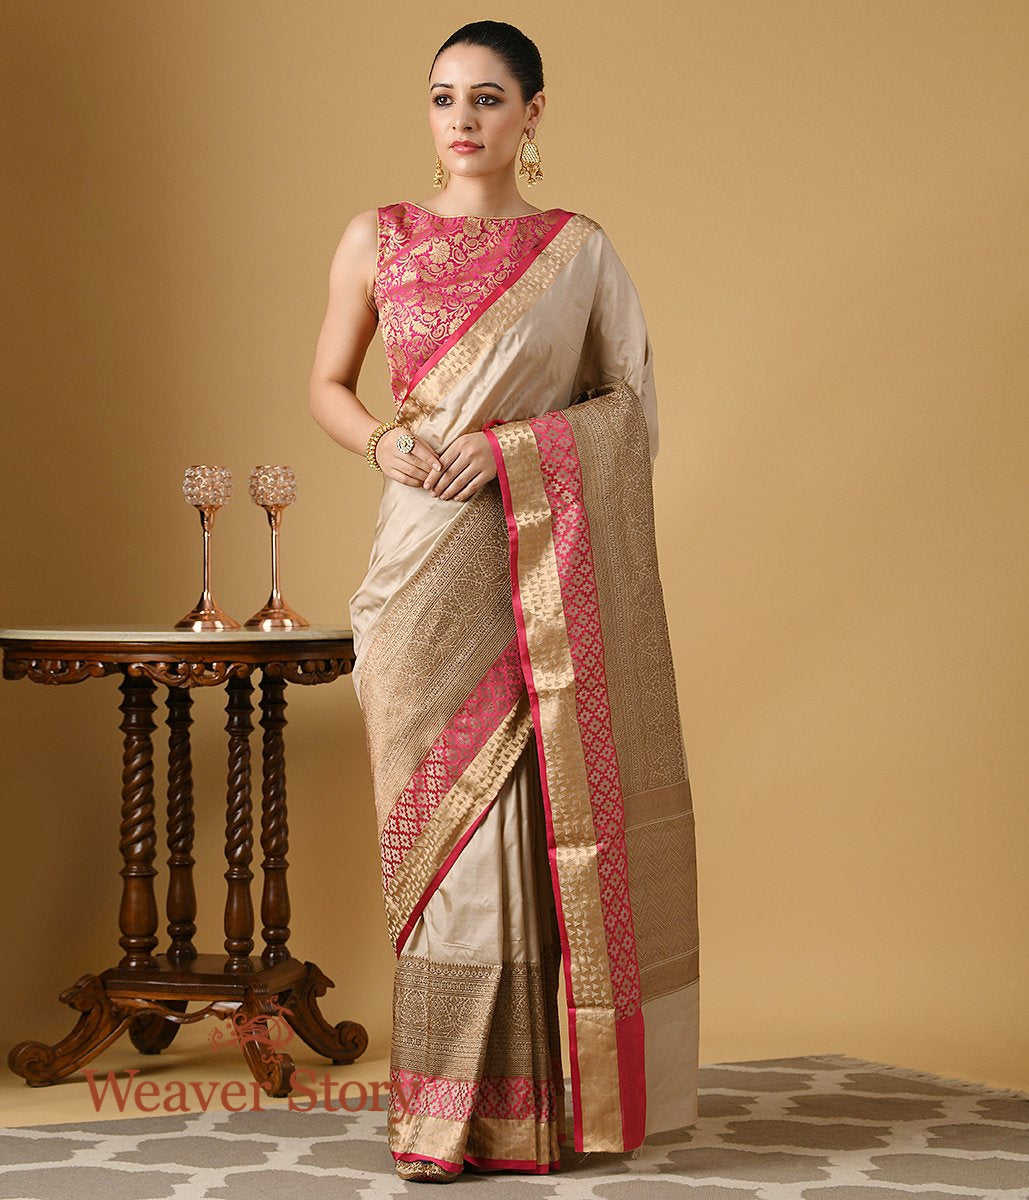 Handwoven Beige Saree with Antique Zari Border